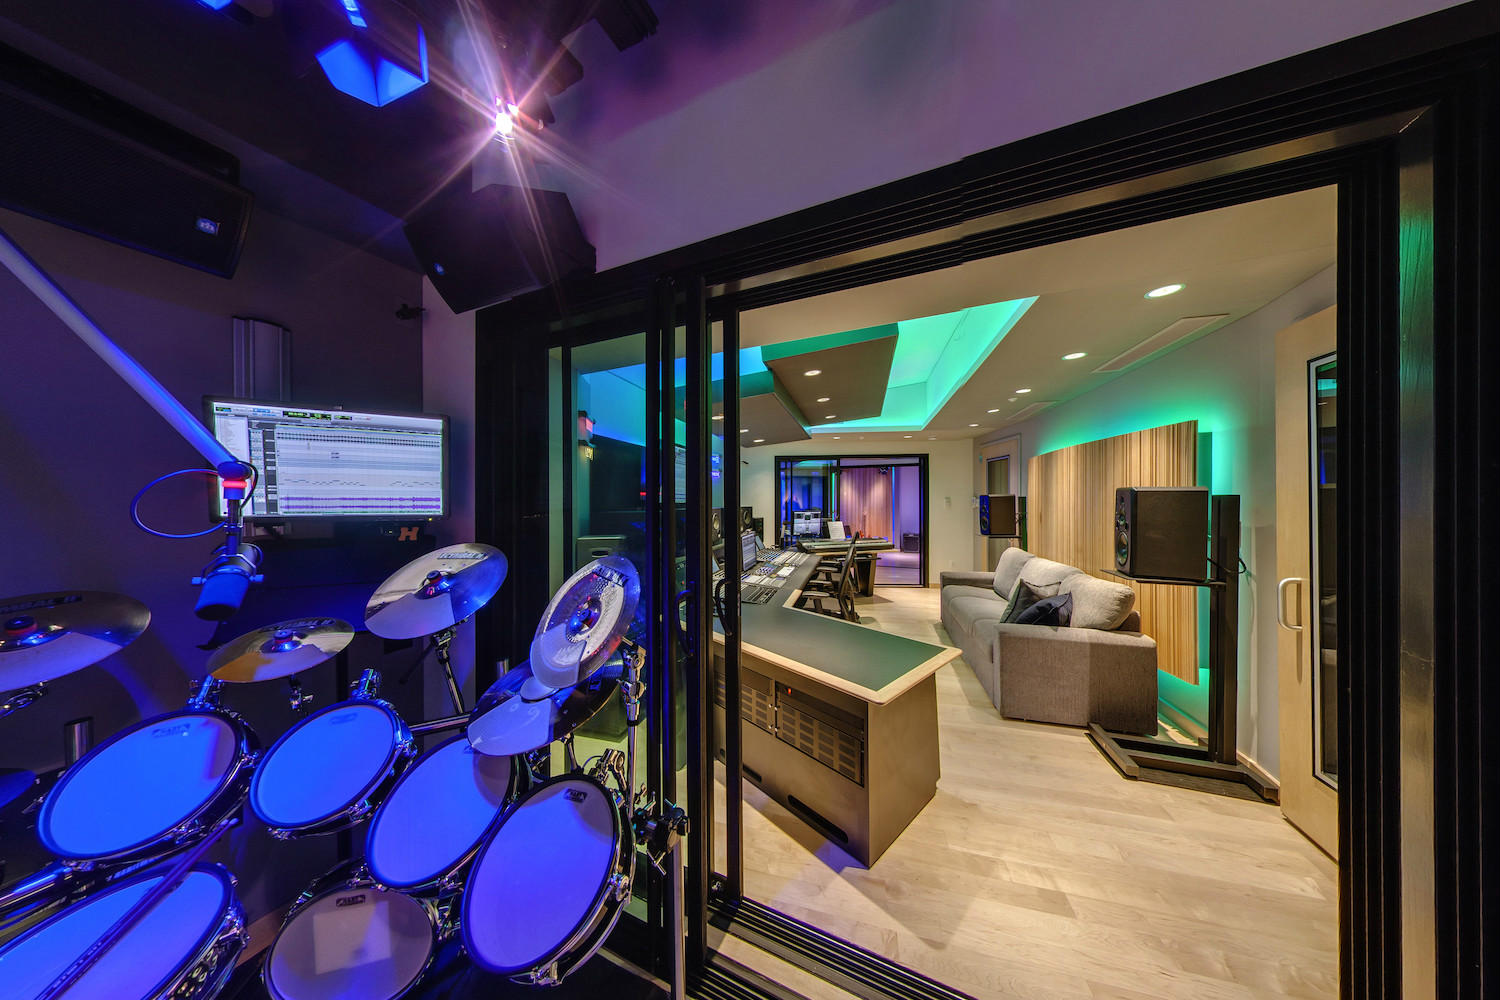 The MacPhails met WSDG to achieve a full up, professionally designed, acoustically superlative residential recording studio for their thriving audio production business. ISO Booth to Studio.